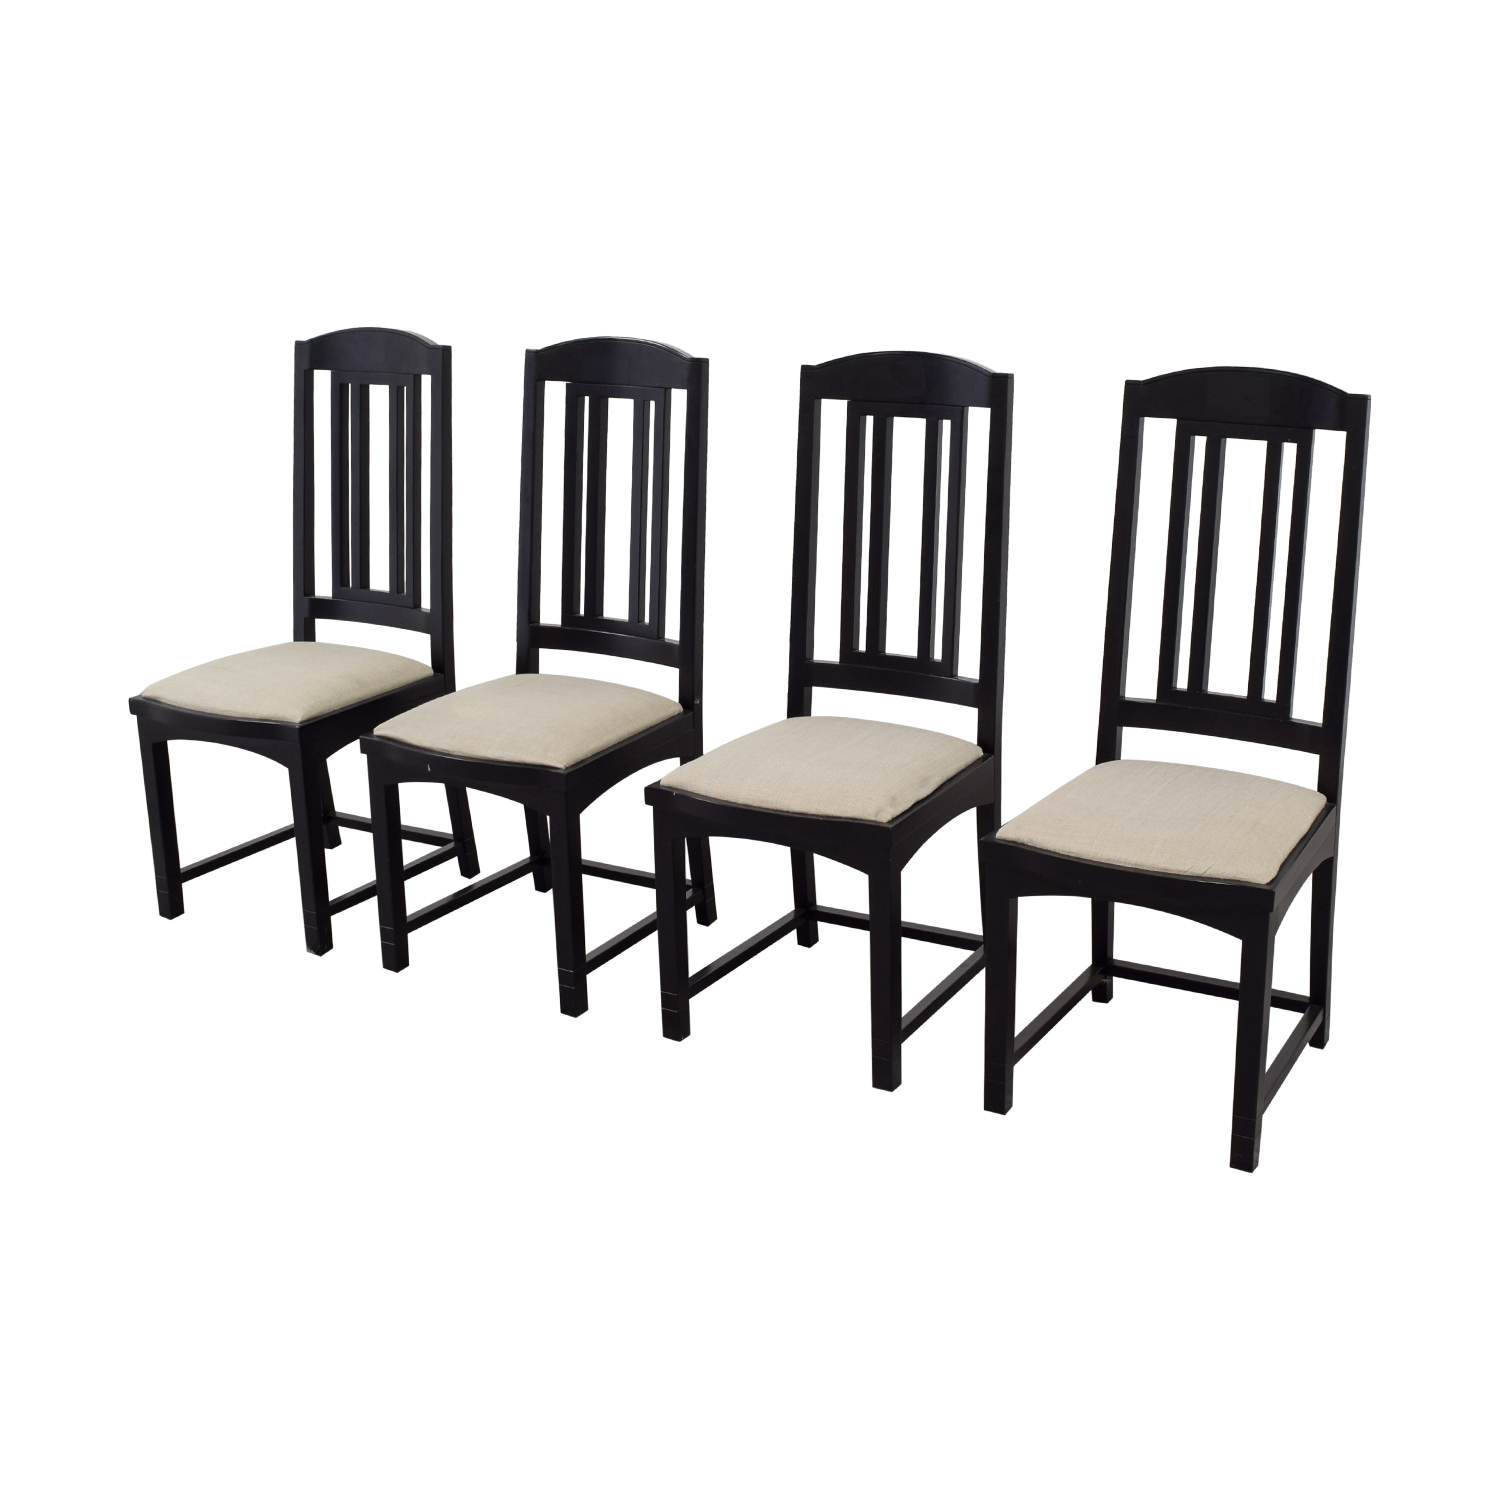 PACE Collection PACE Collection Black Dining Chairs nyc